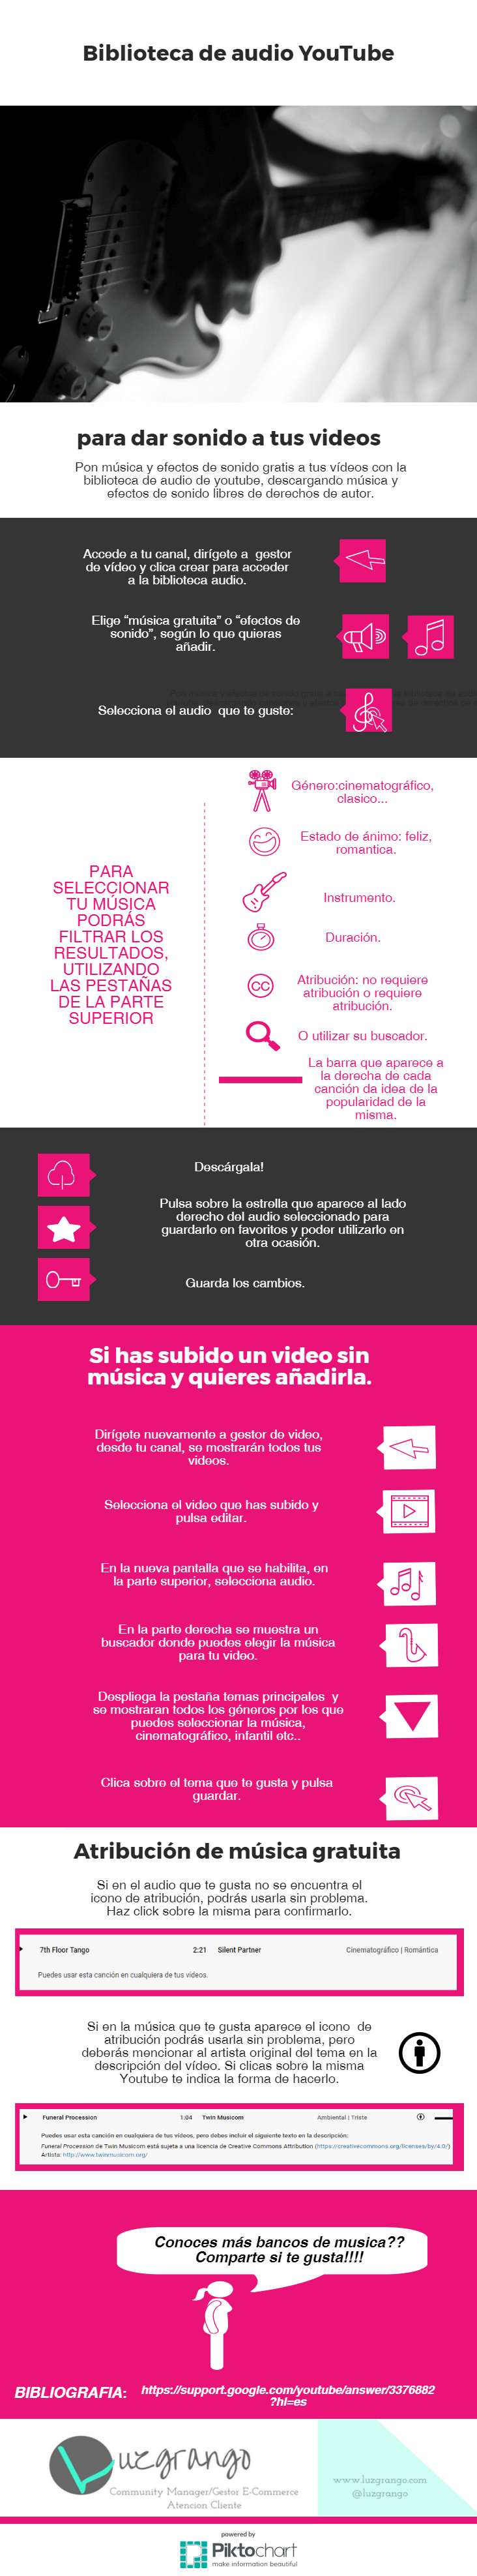 biblioteca-audio-youtube-redes sociales